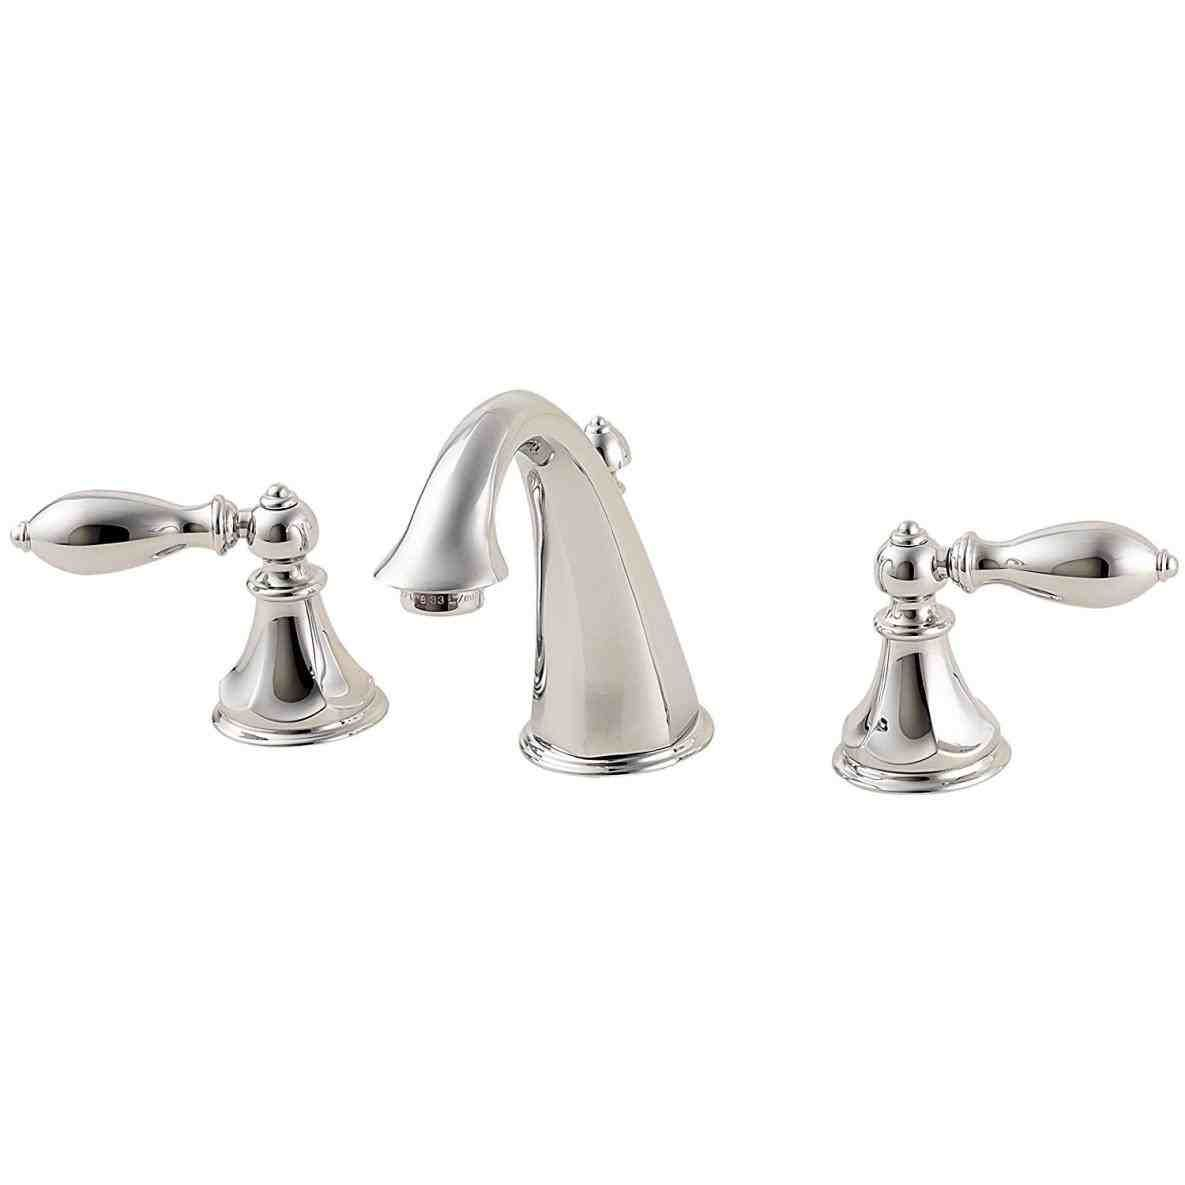 New Post price pfister bathtub faucet parts visit ...